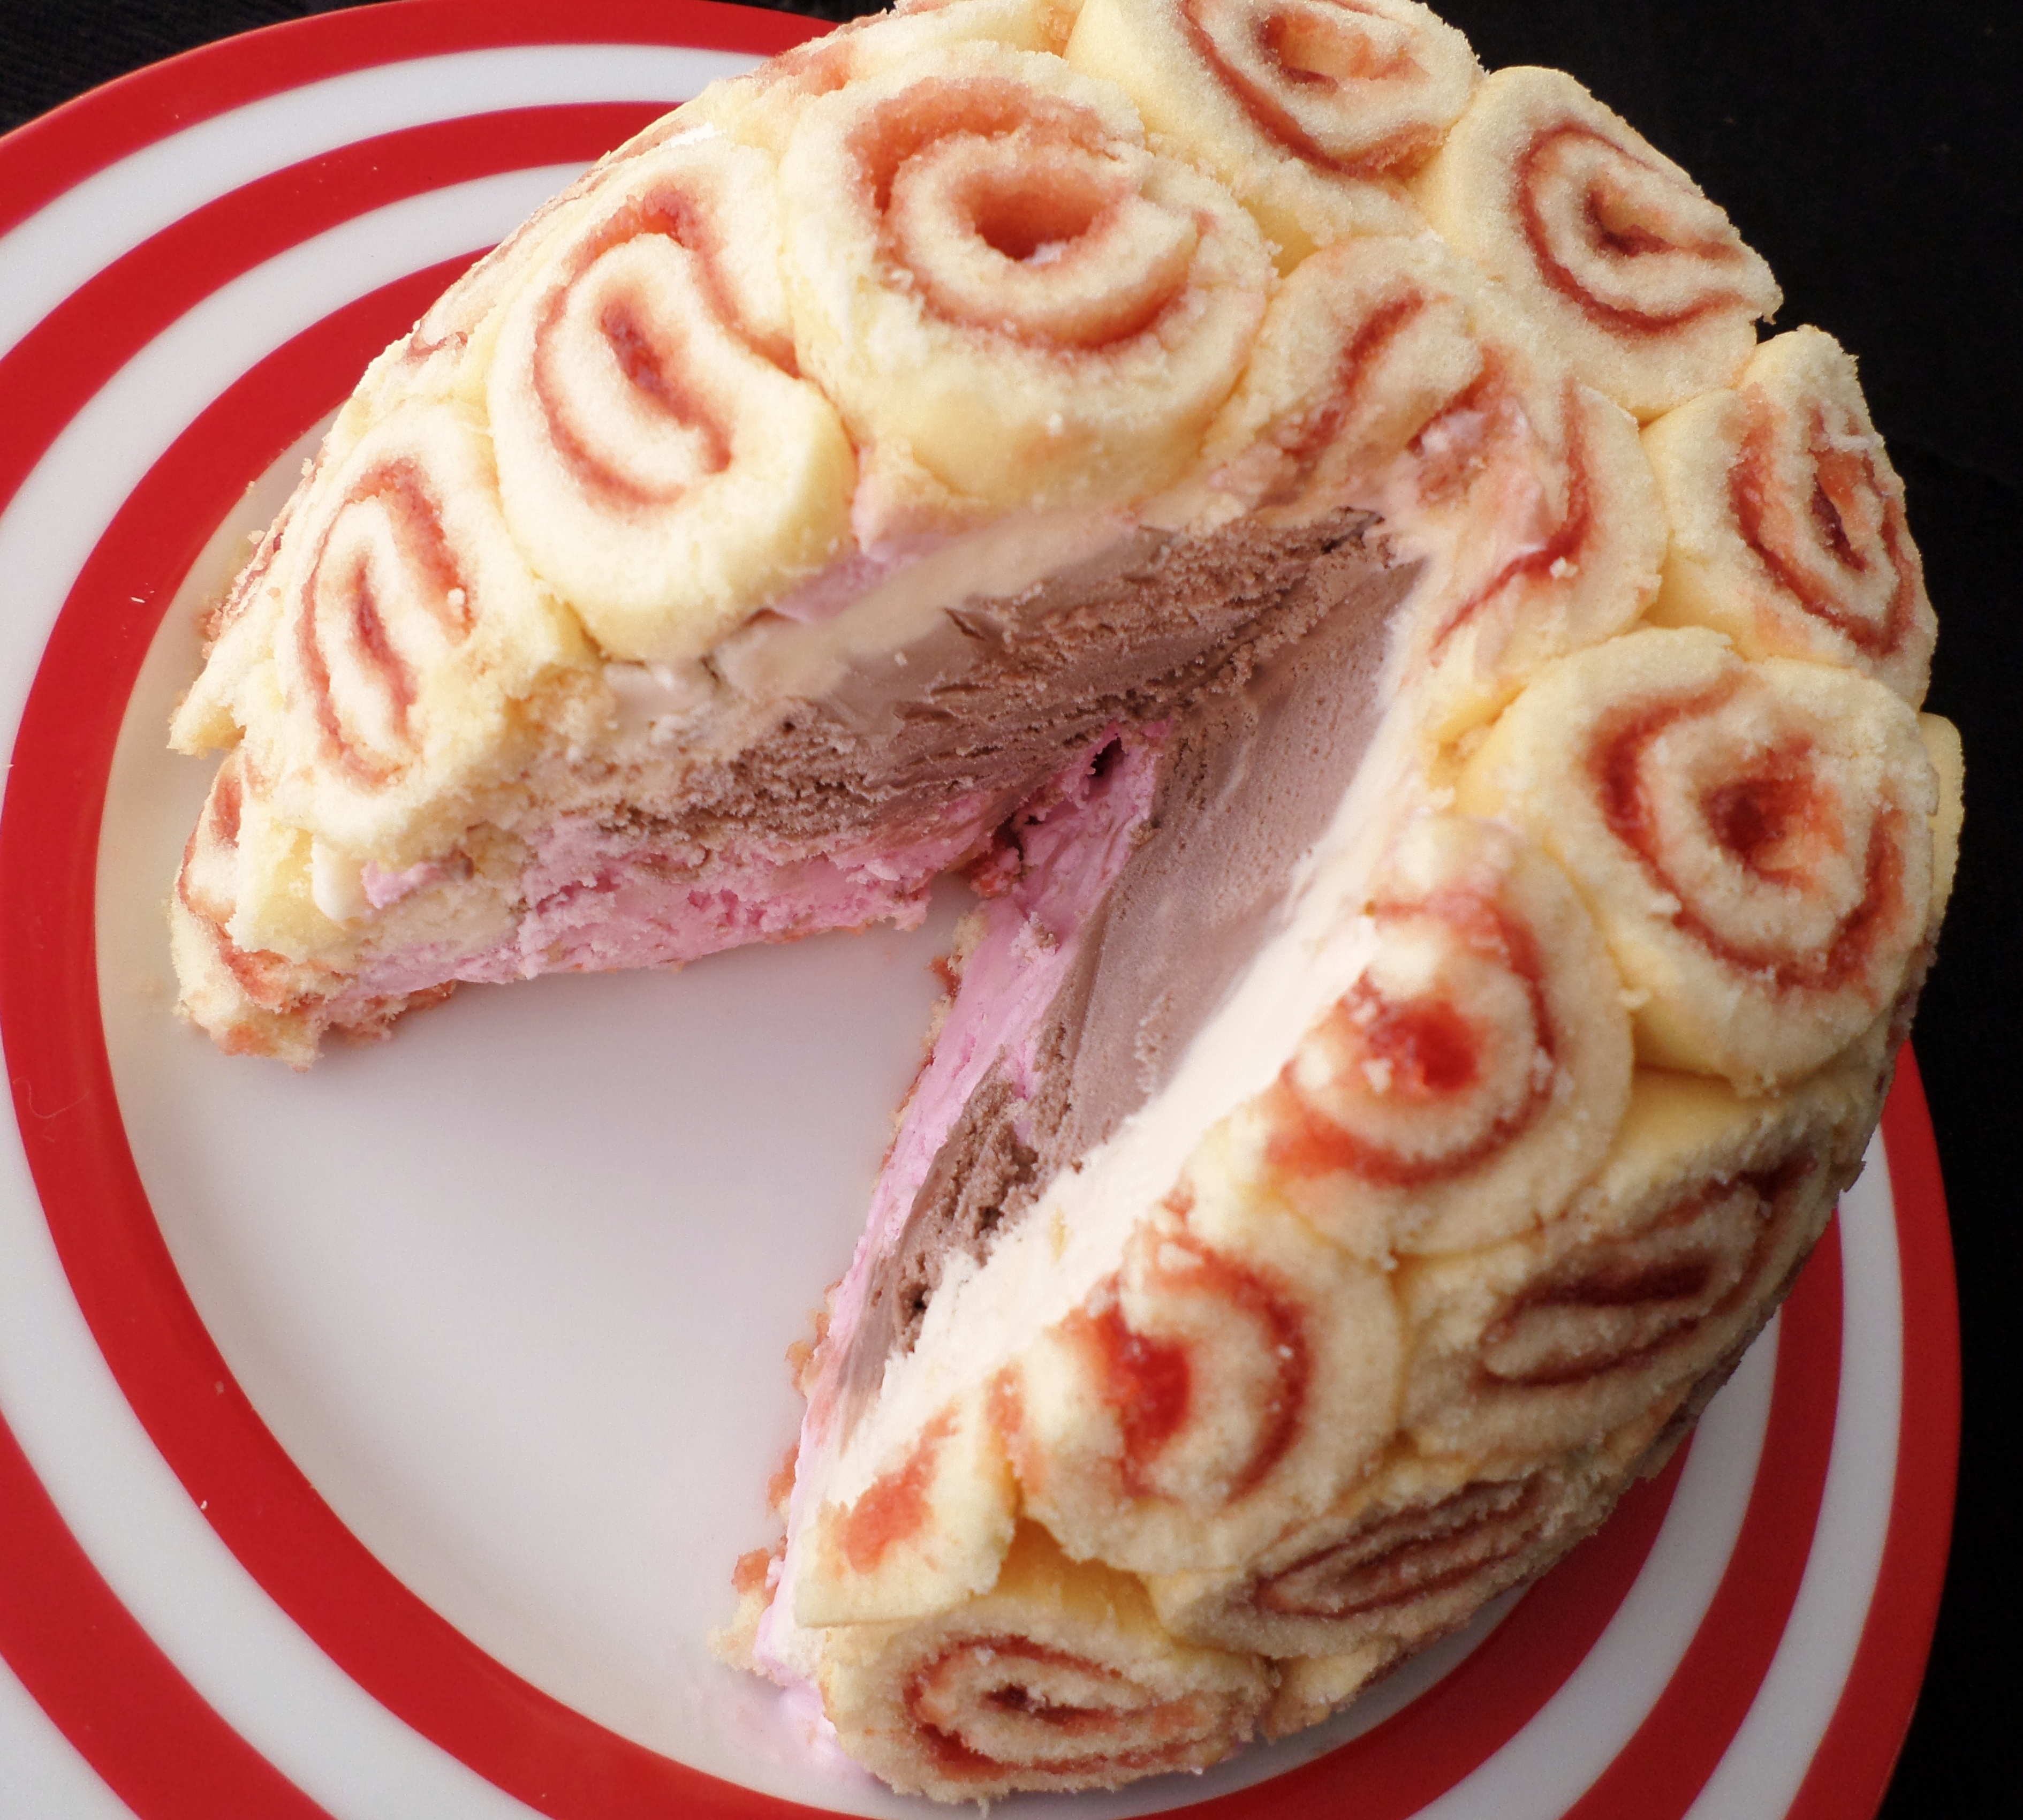 Can You Use Any Cake Recipe For A Swiss Roll